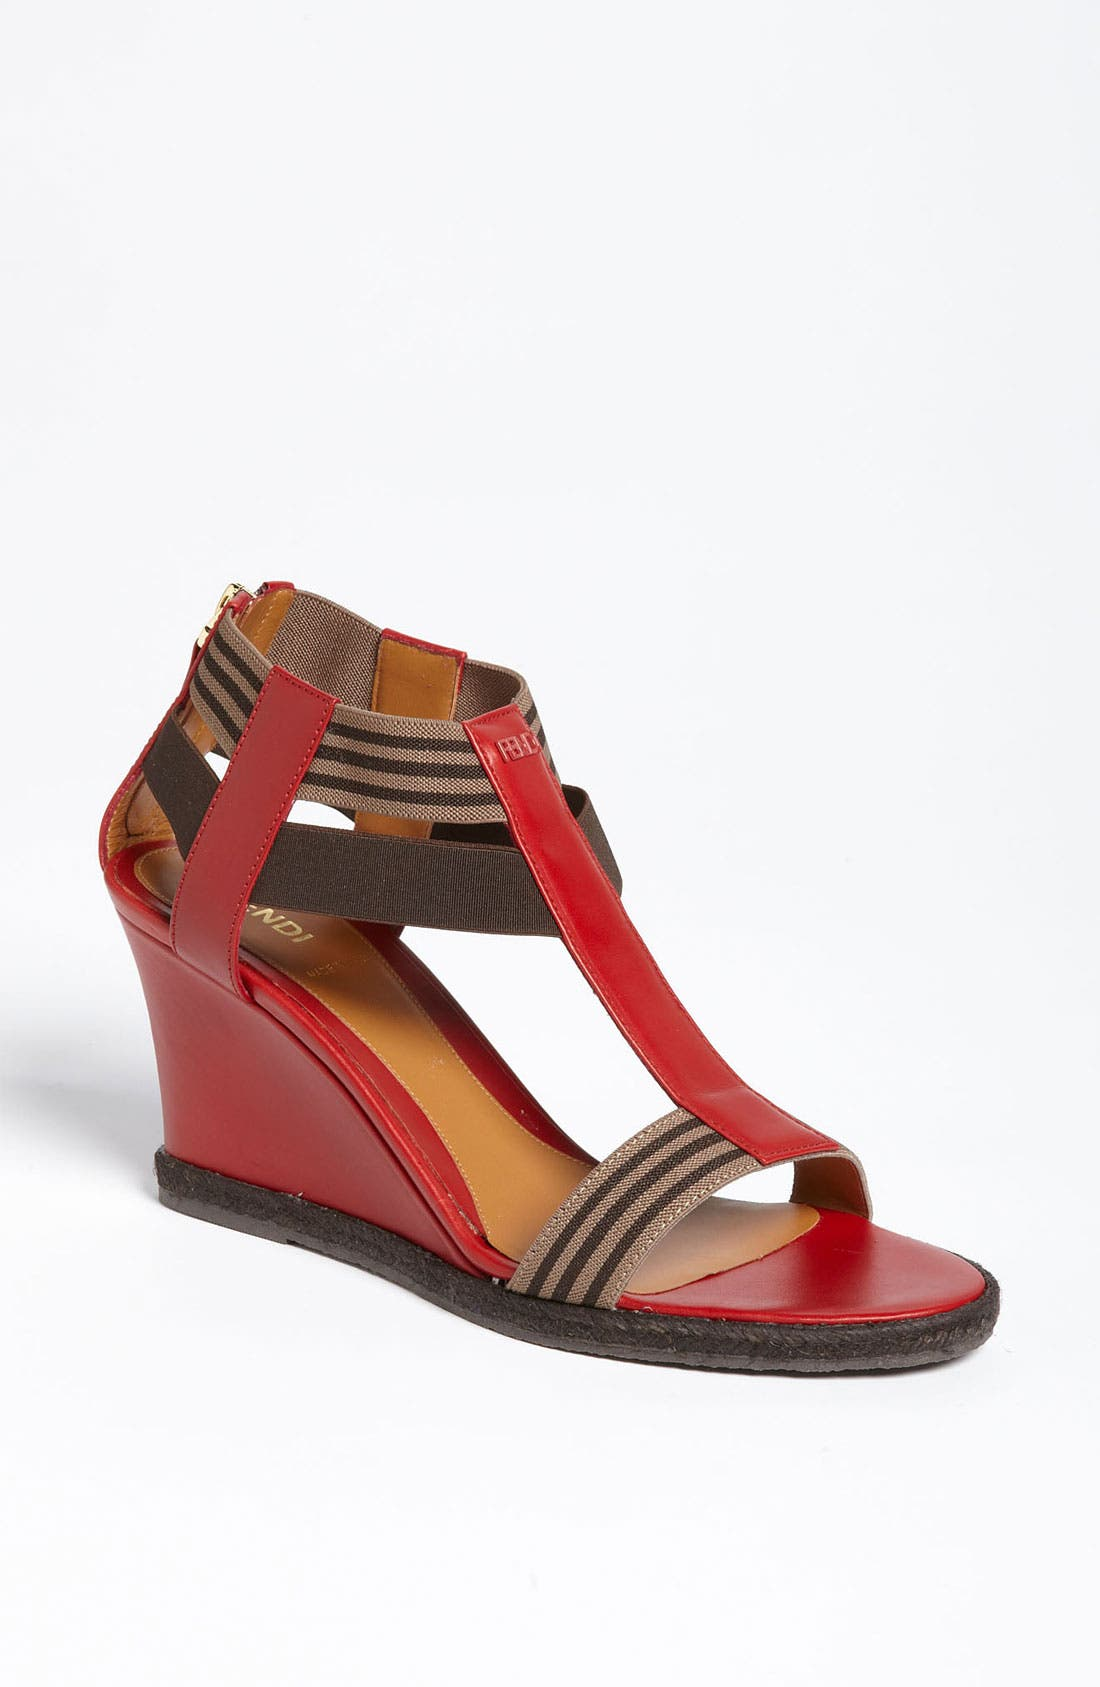 Alternate Image 1 Selected - Fendi 'Carioca' Wedge Sandal